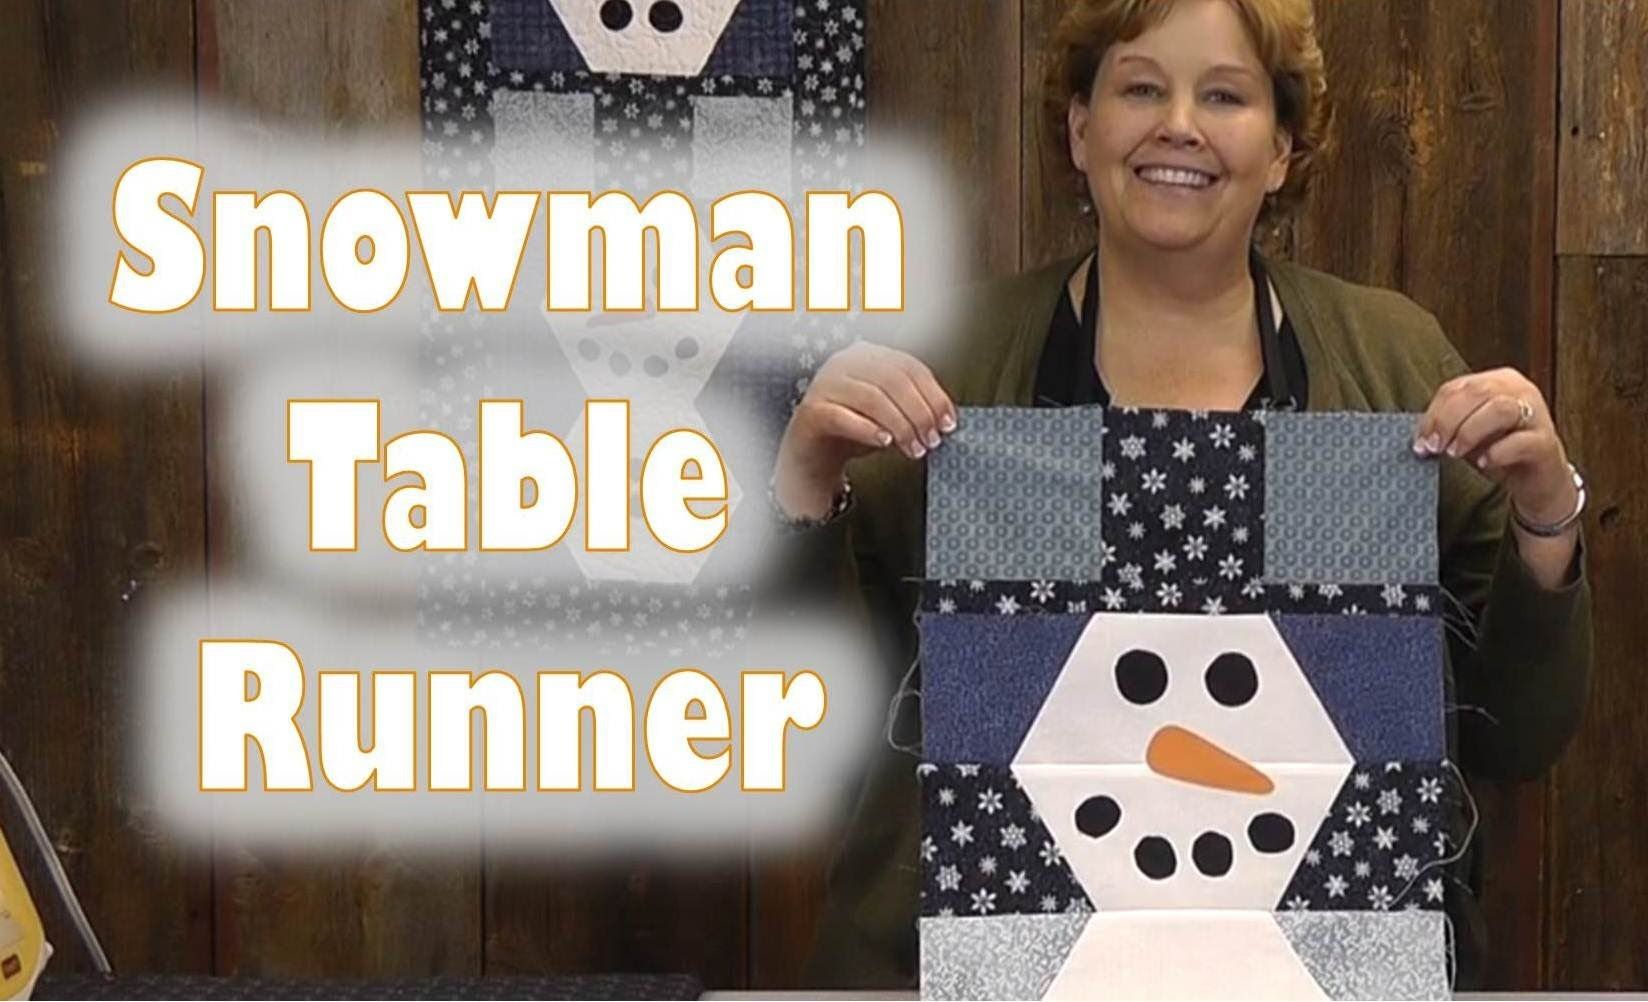 Snowman table runner missouri star quilt company pinterest scrap buster how to make a snowman wall hanging half hexie tutorial video from missouri star quilt co baditri Choice Image